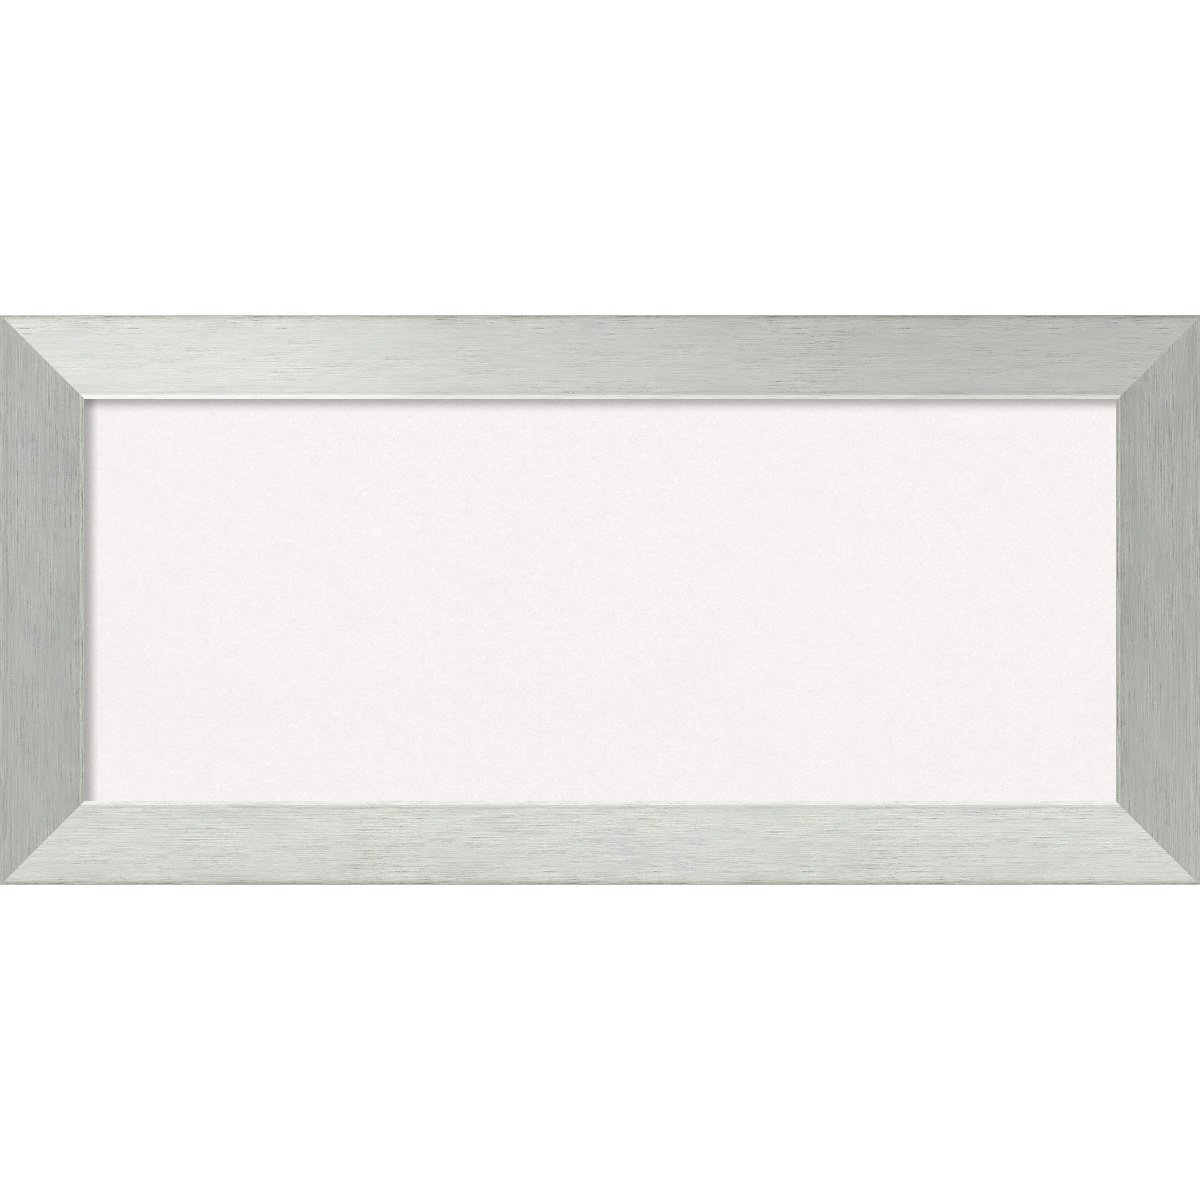 Amanti Art Framed White Cork Board Brushed Sterling Silver: Outer Size 32 x 24, Large DSW3982802